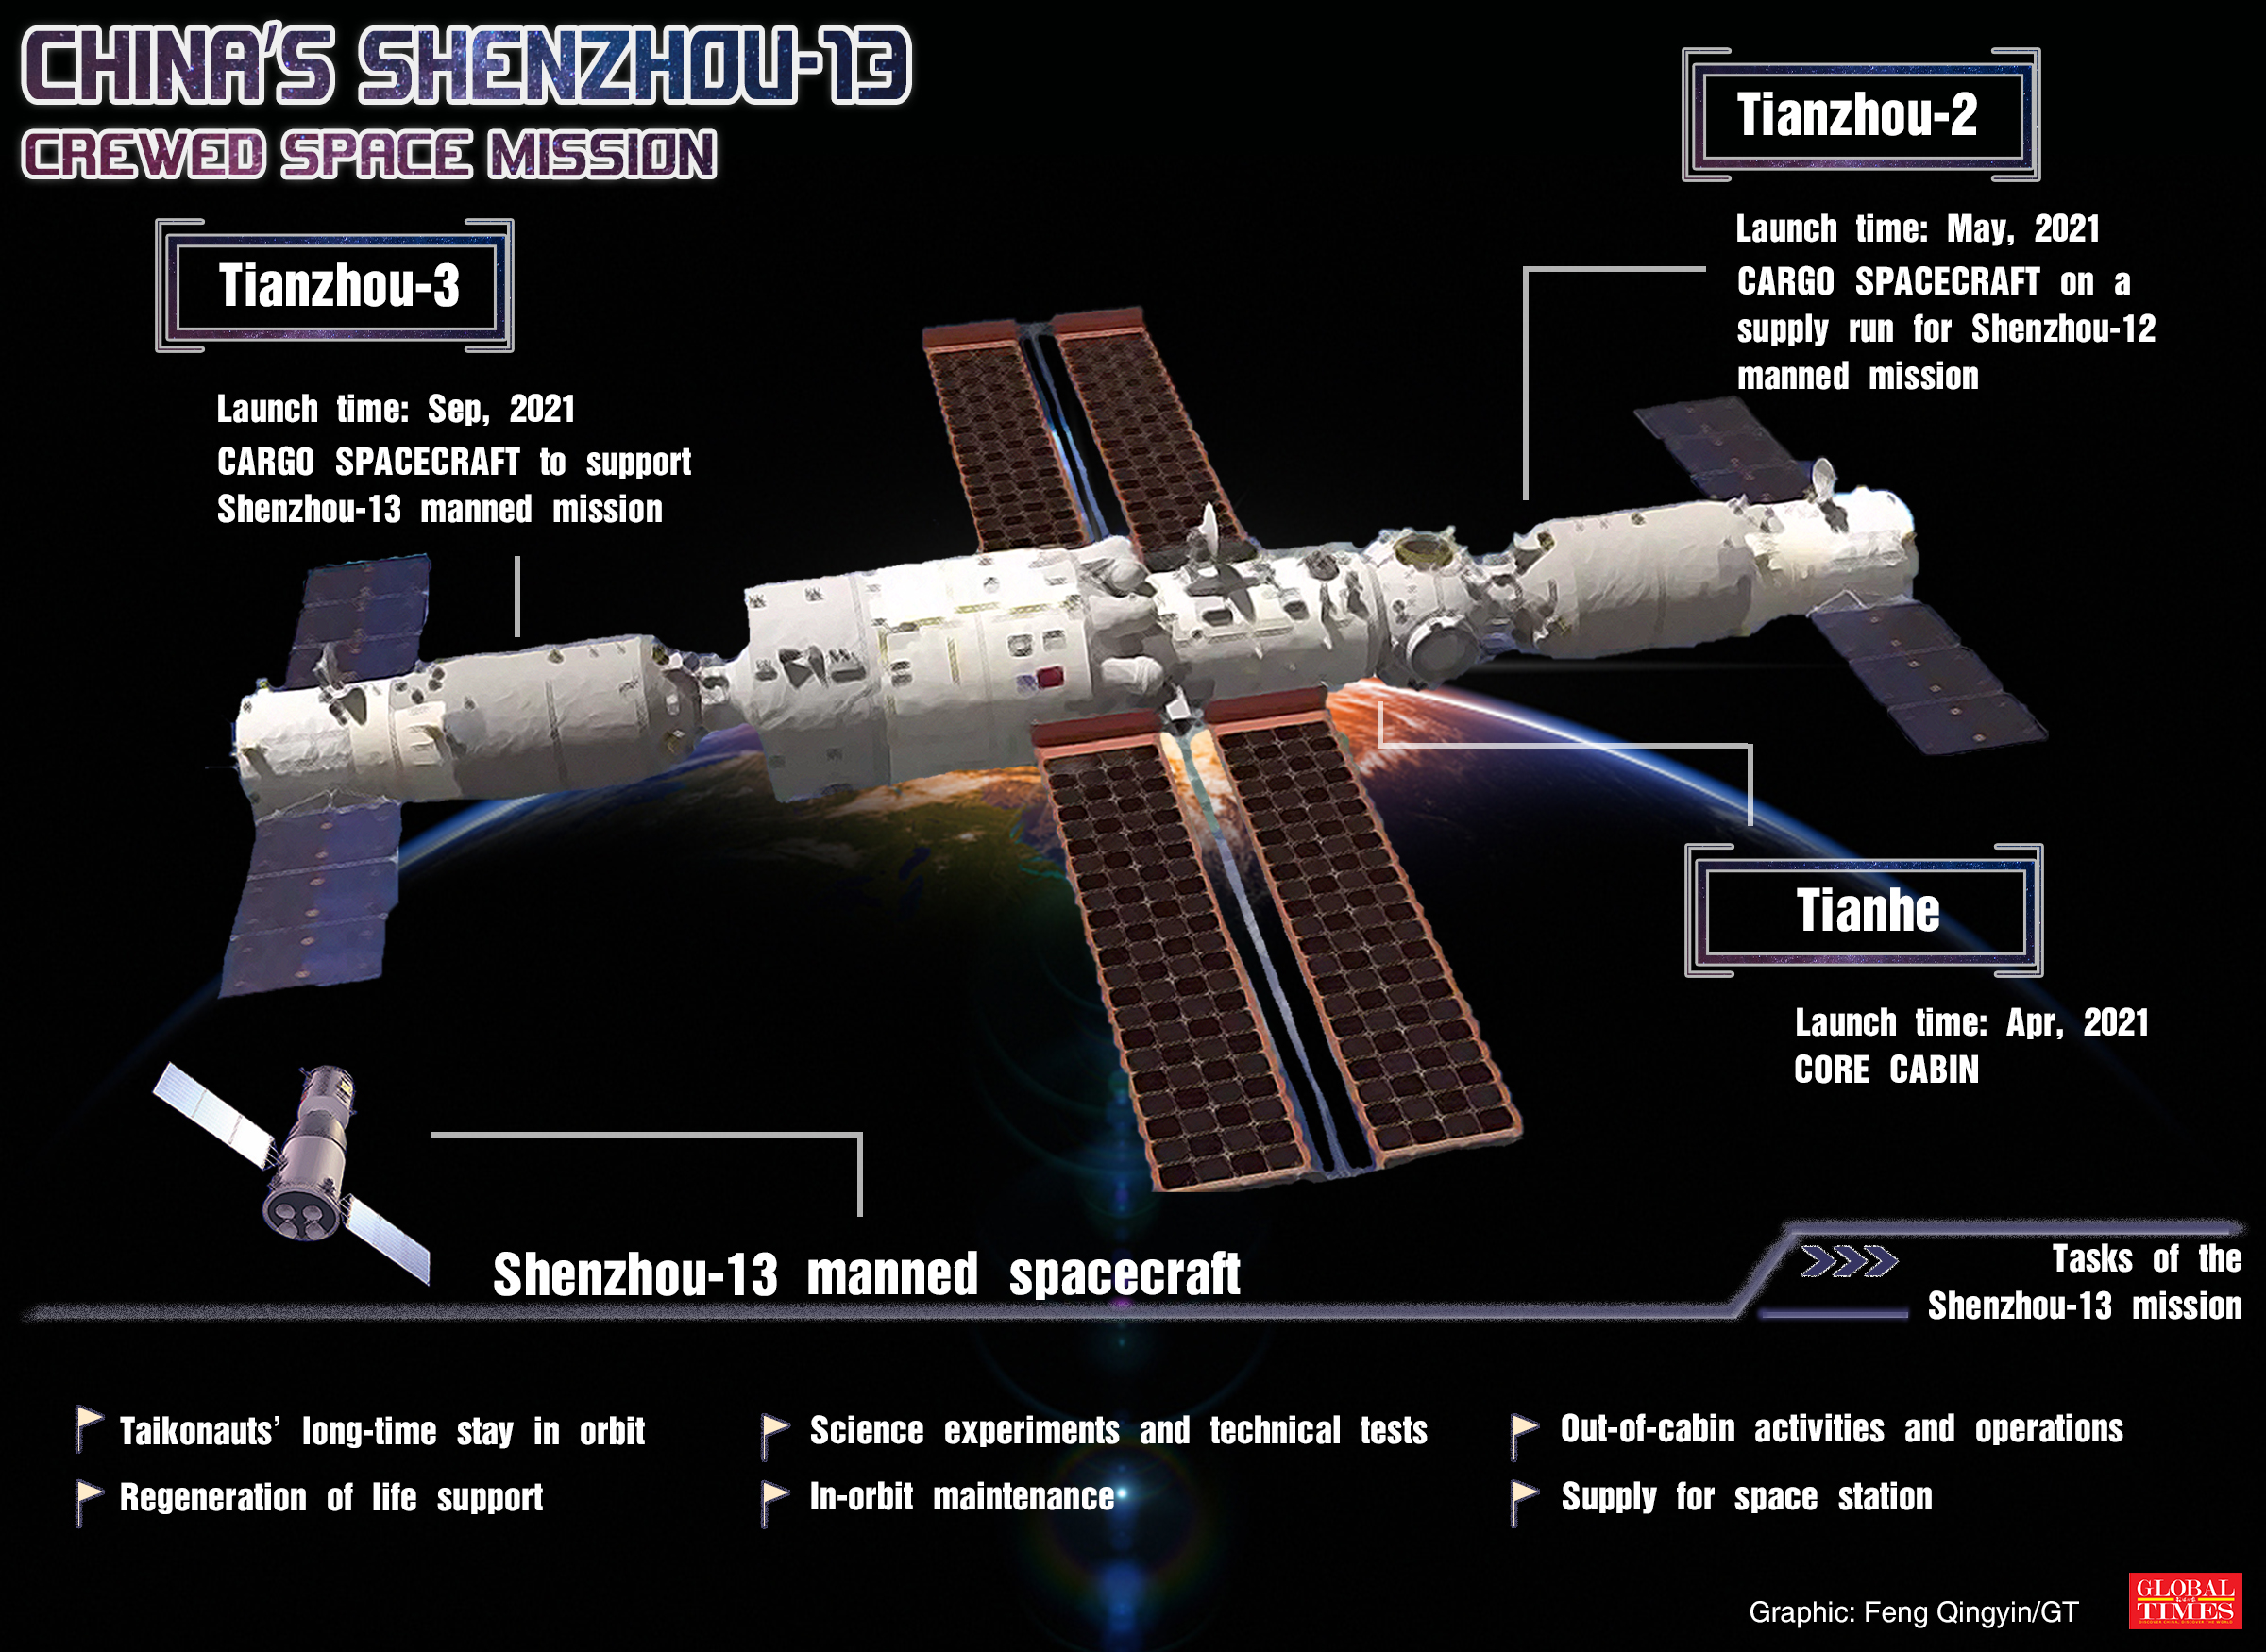 China's Shenzhou-13 crewed space mission Graphic: Feng Qingyin/GT